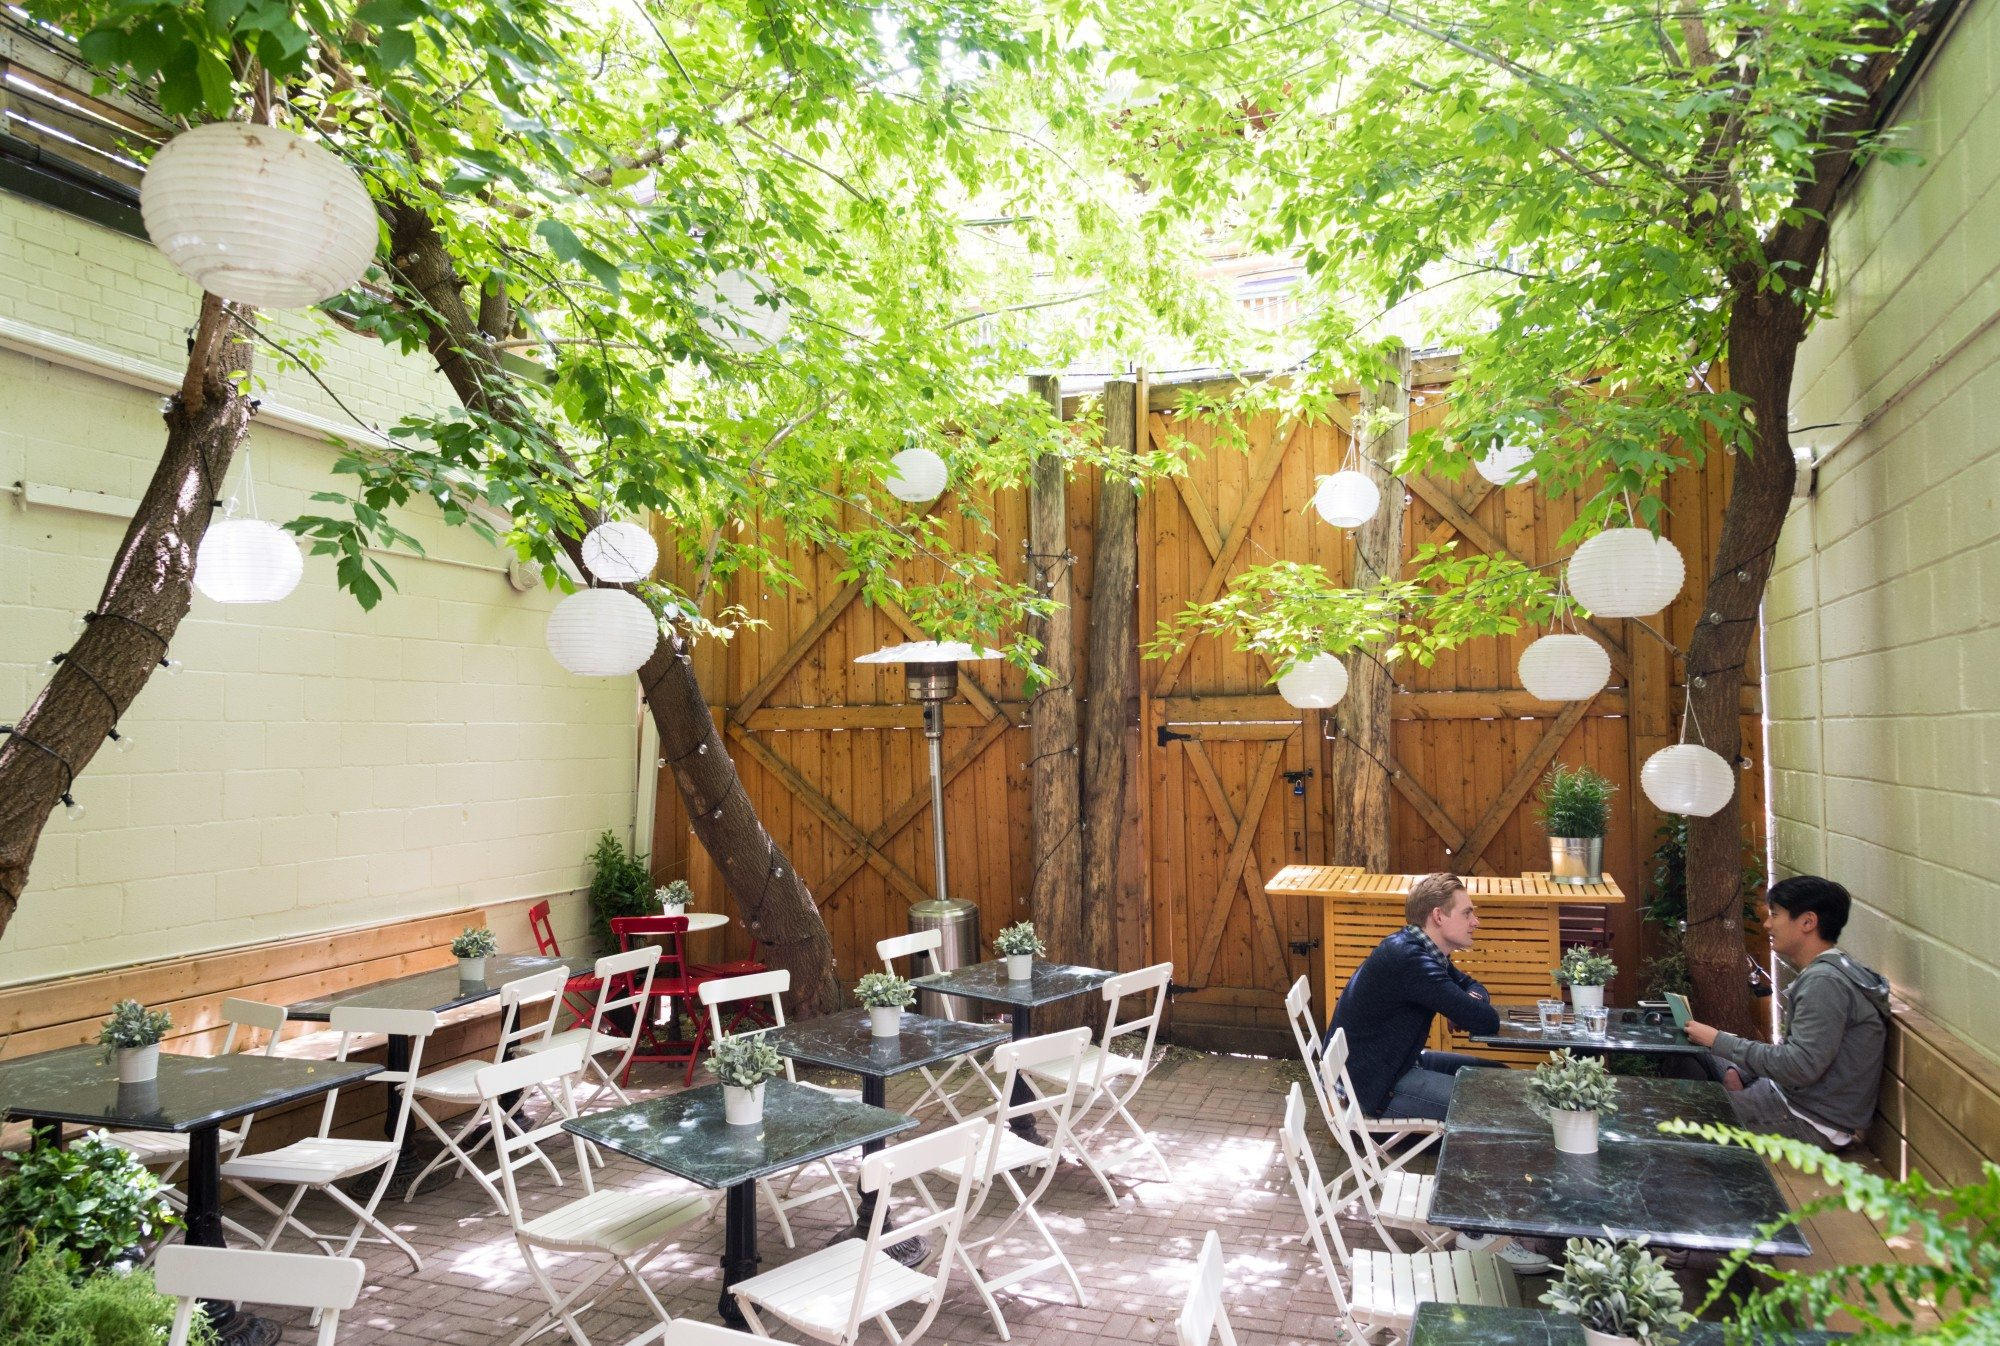 toronto-restaurants-bars-best-new-patios-guide-2016-the-walton-little-italy